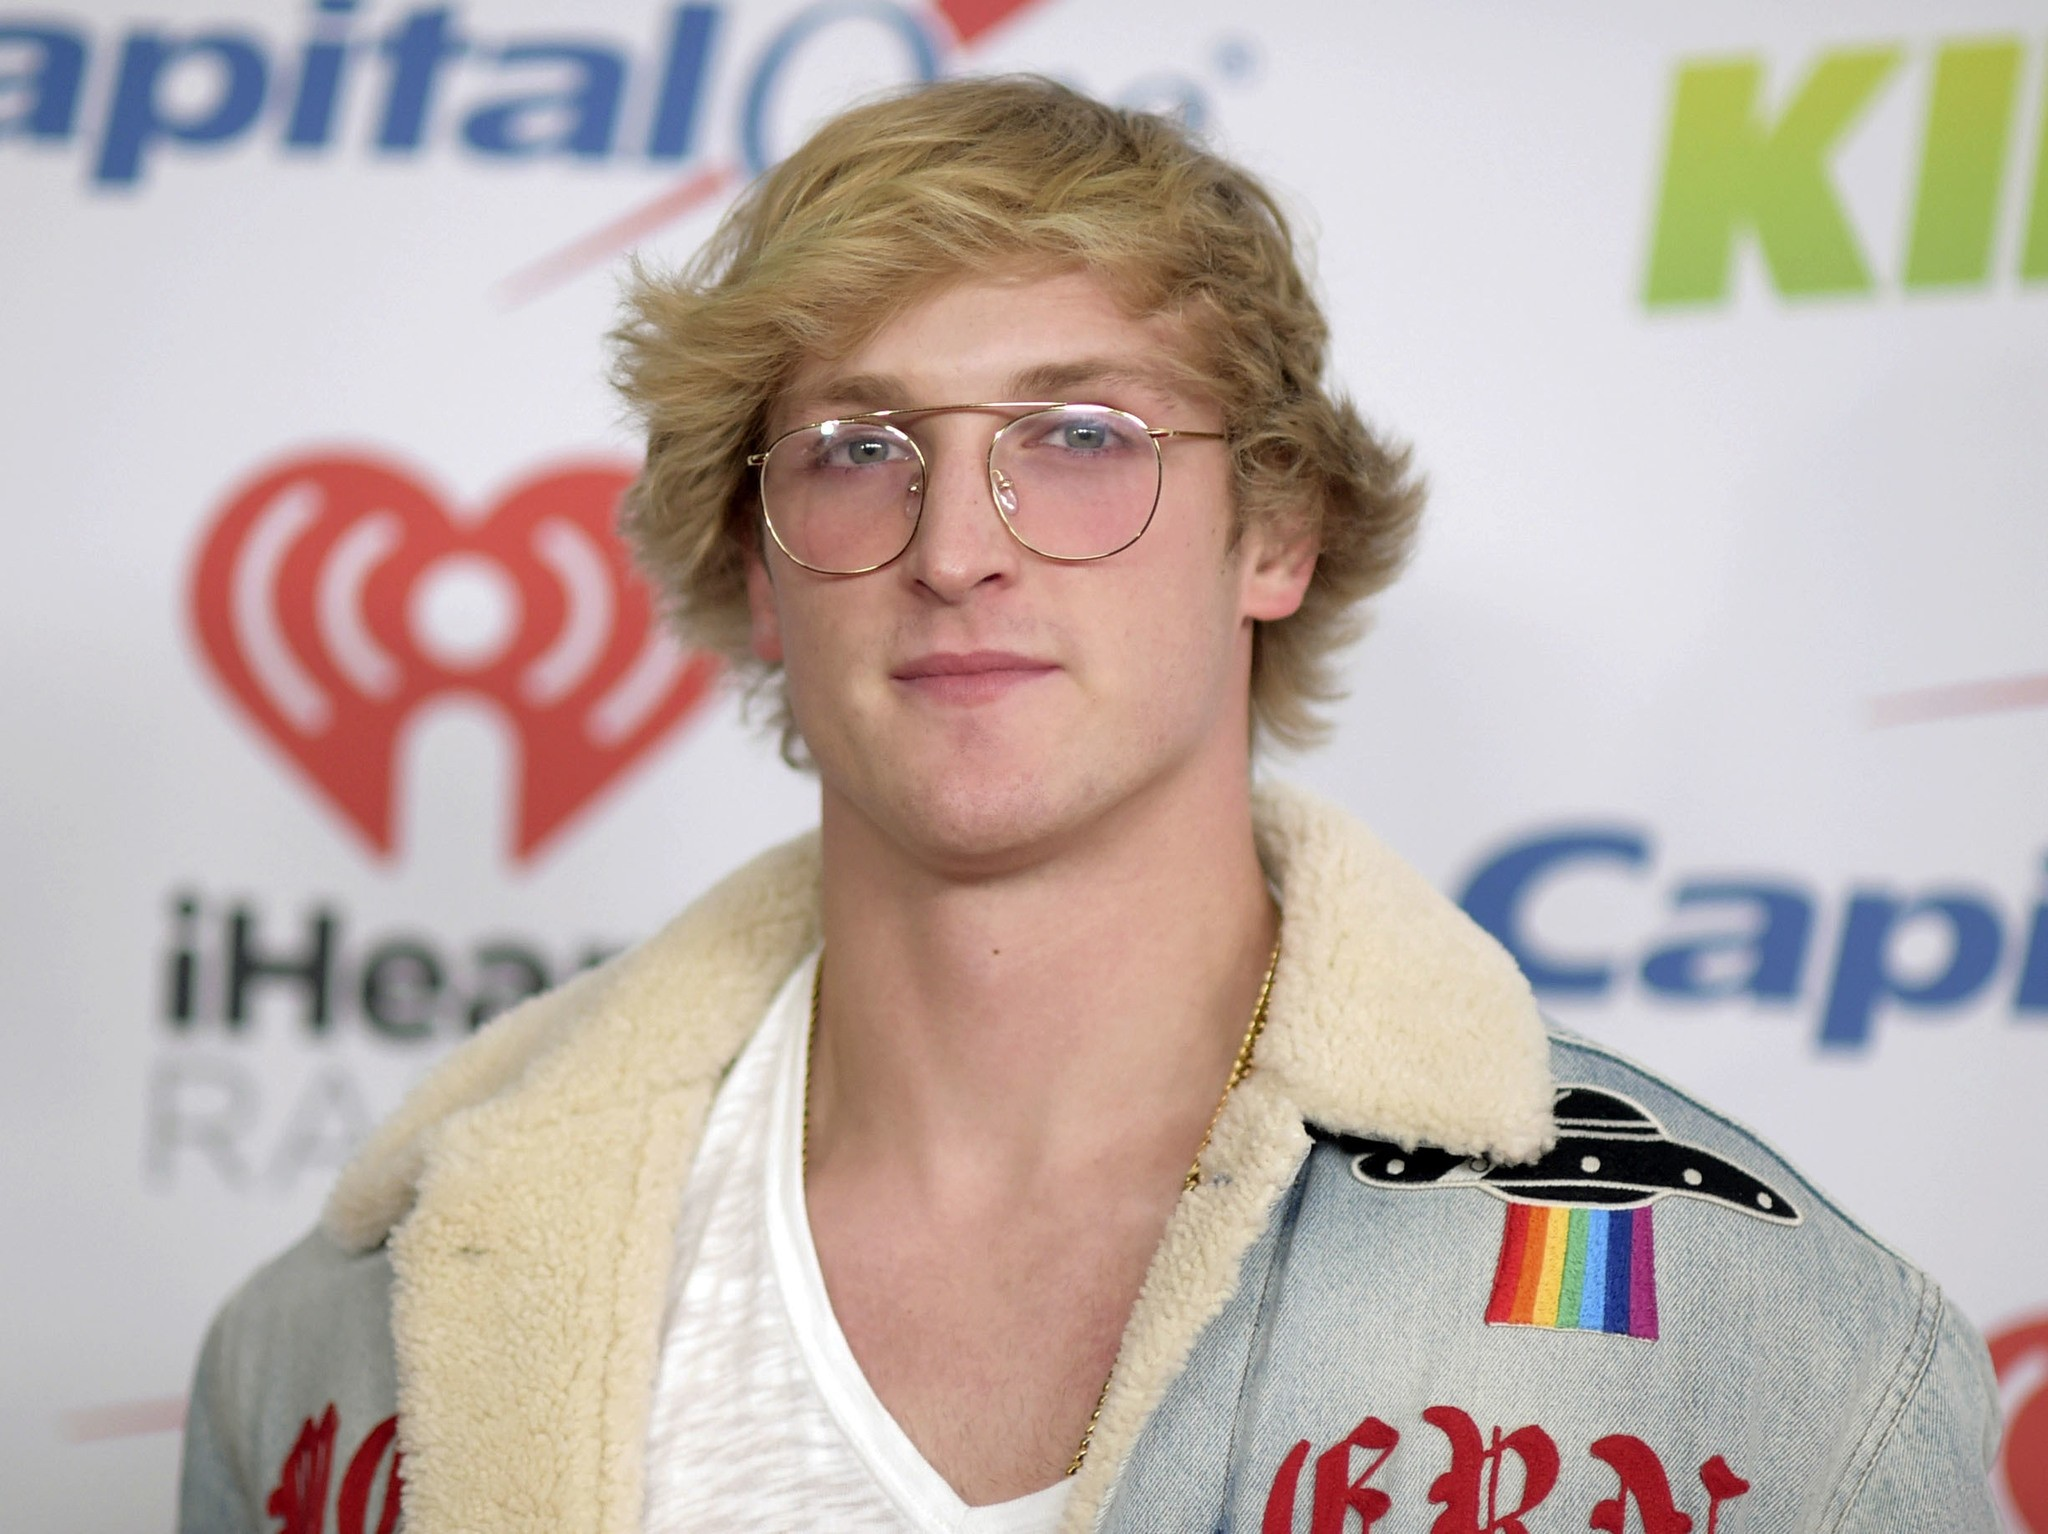 YouTube personality Logan Paul arrives at Jingle Ball in Inglewood, Calif.  (AP Photo)